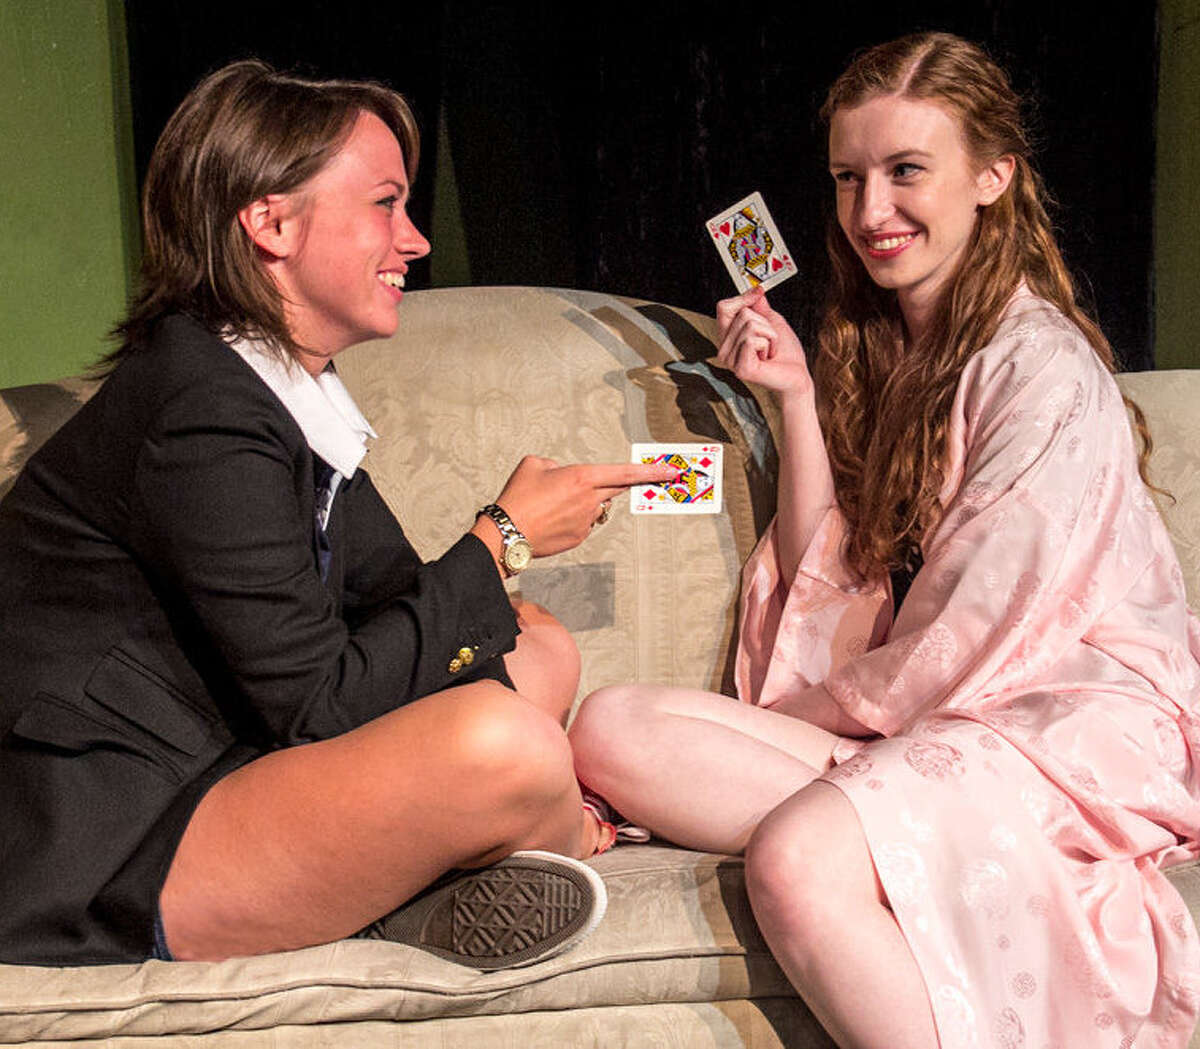 Bridget Melley (from left) and Sarah Nixon are part of the cast of